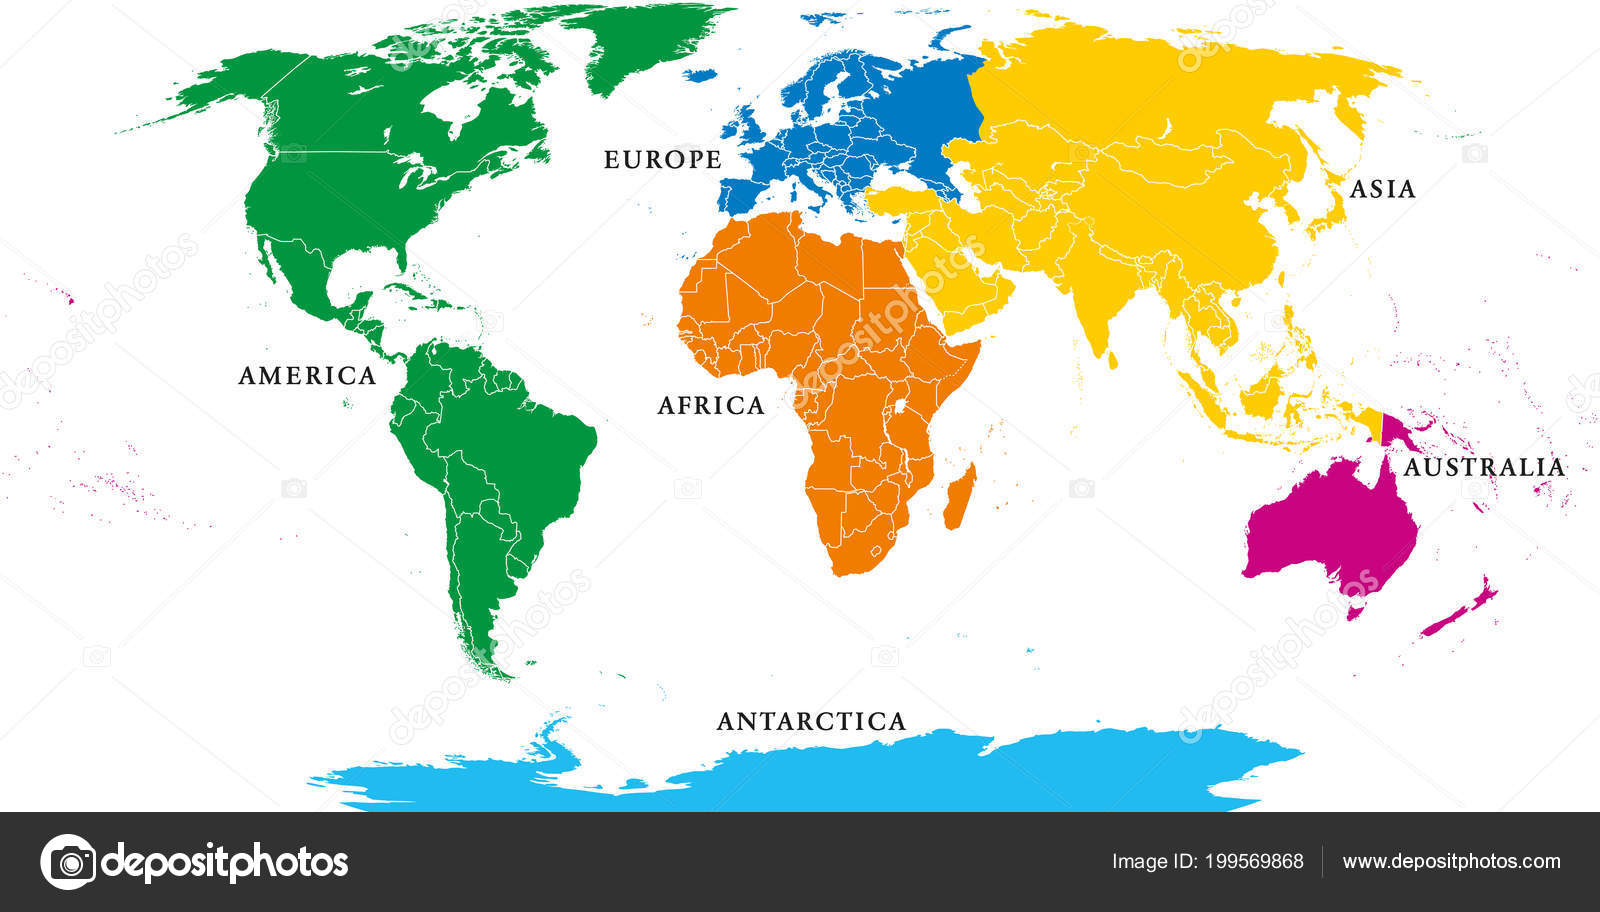 Six continents political world map borders africa america antarctica six continents political world map with borders africa america antarctica asia australia and europe robinson projection english labeling gumiabroncs Image collections